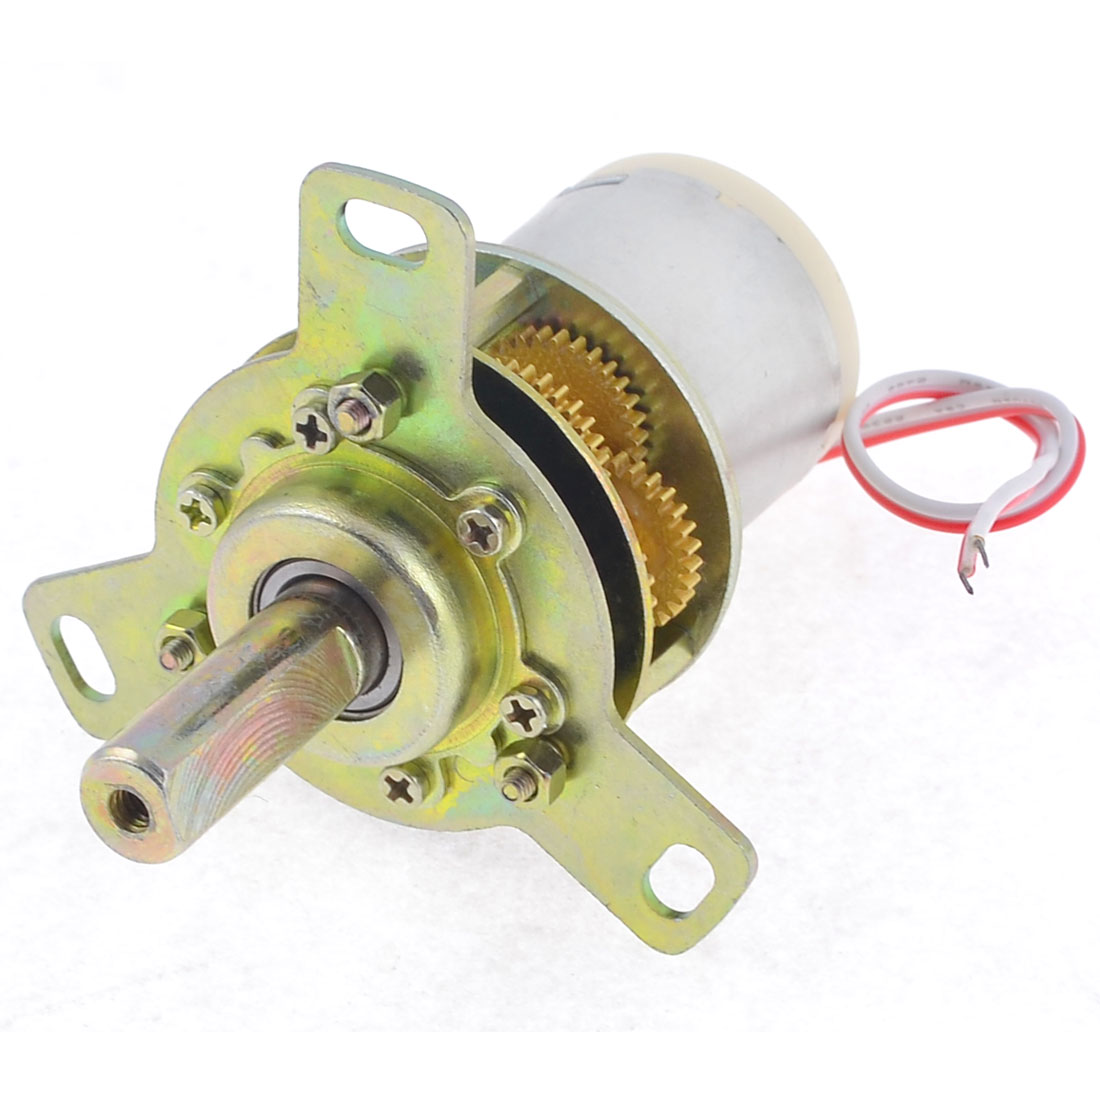 12VDC 15RPM 0.06A Speed Reducer Magnetic Geared Motor 32ZY13